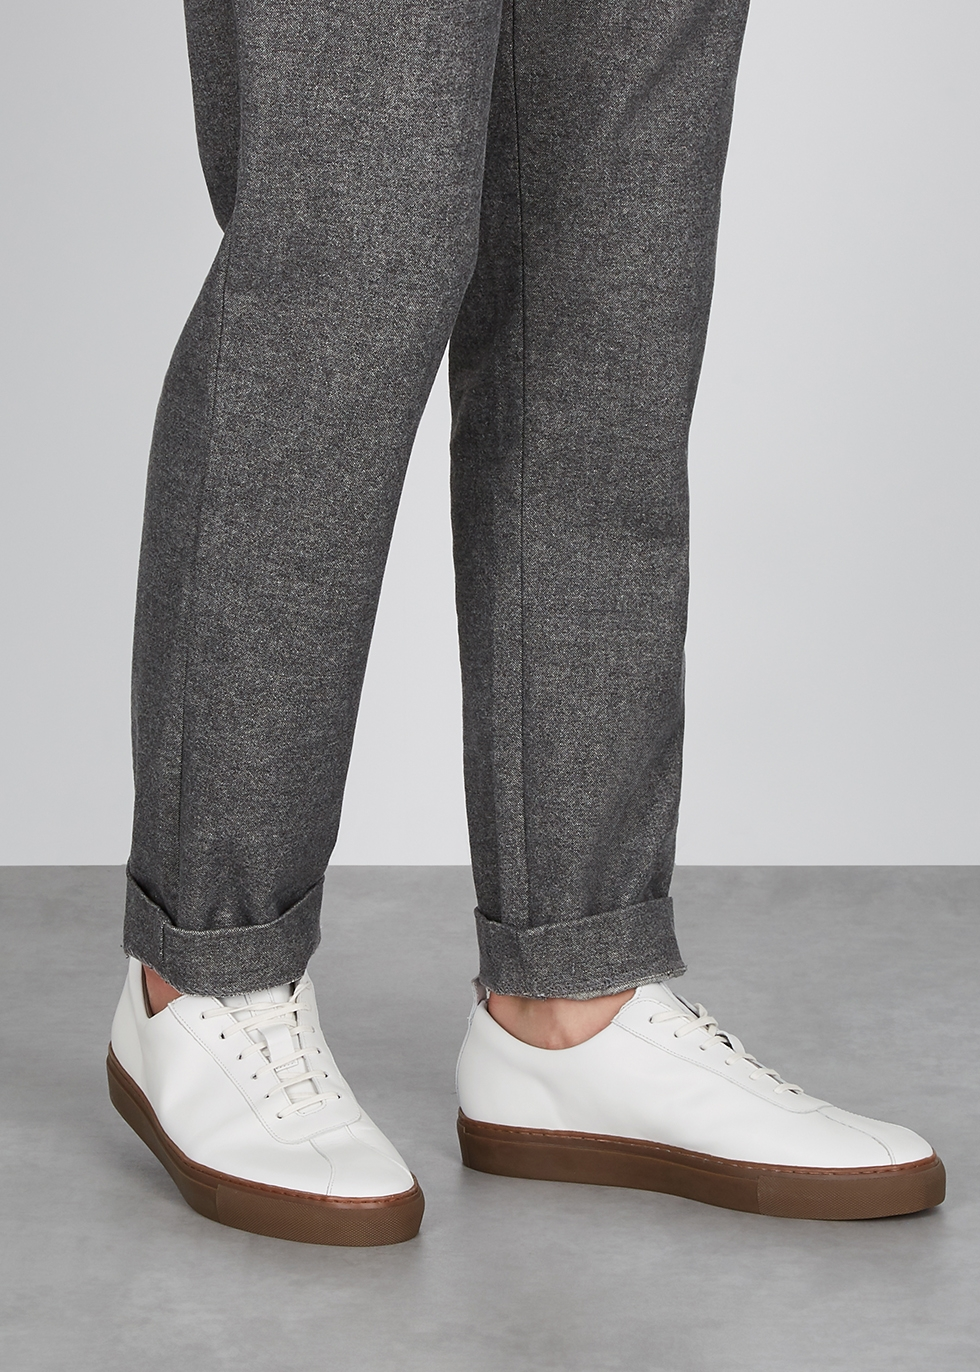 white leather sneakers - Harvey Nichols